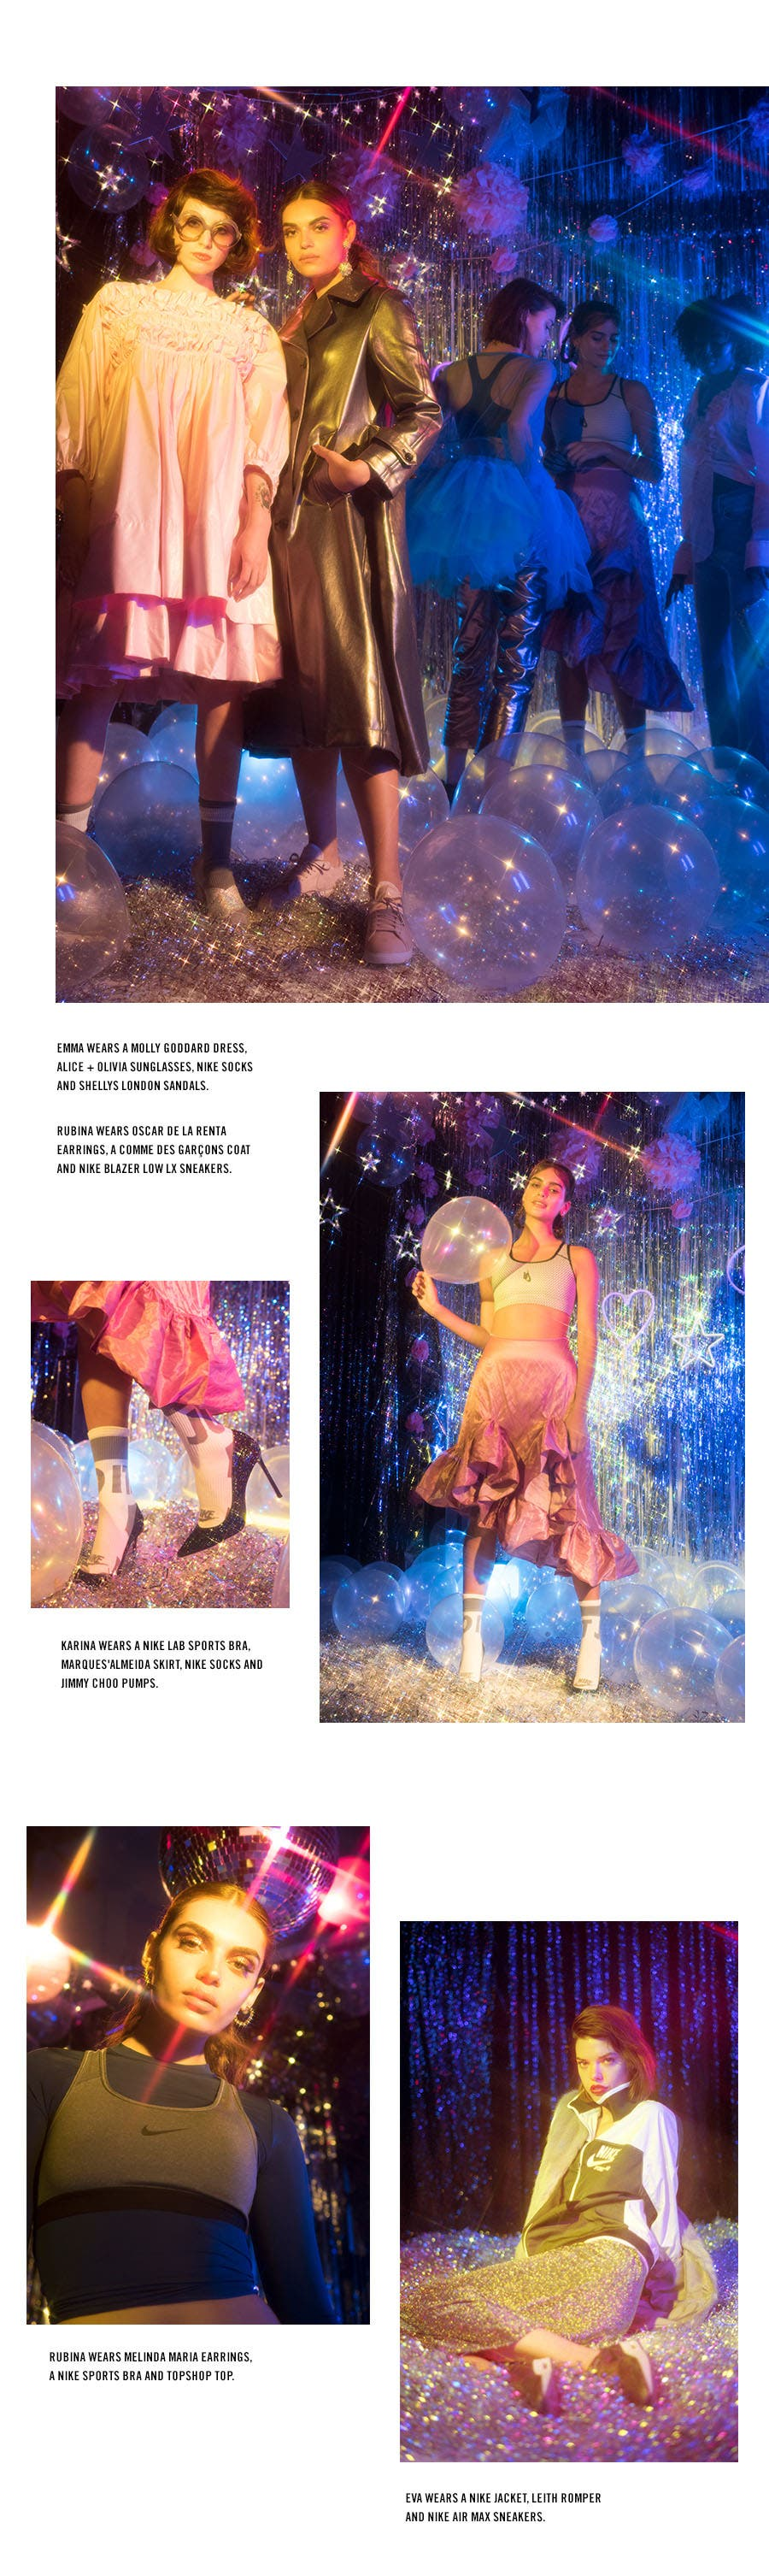 Nordstrom x Nike: night magic holiday dressing editorial.